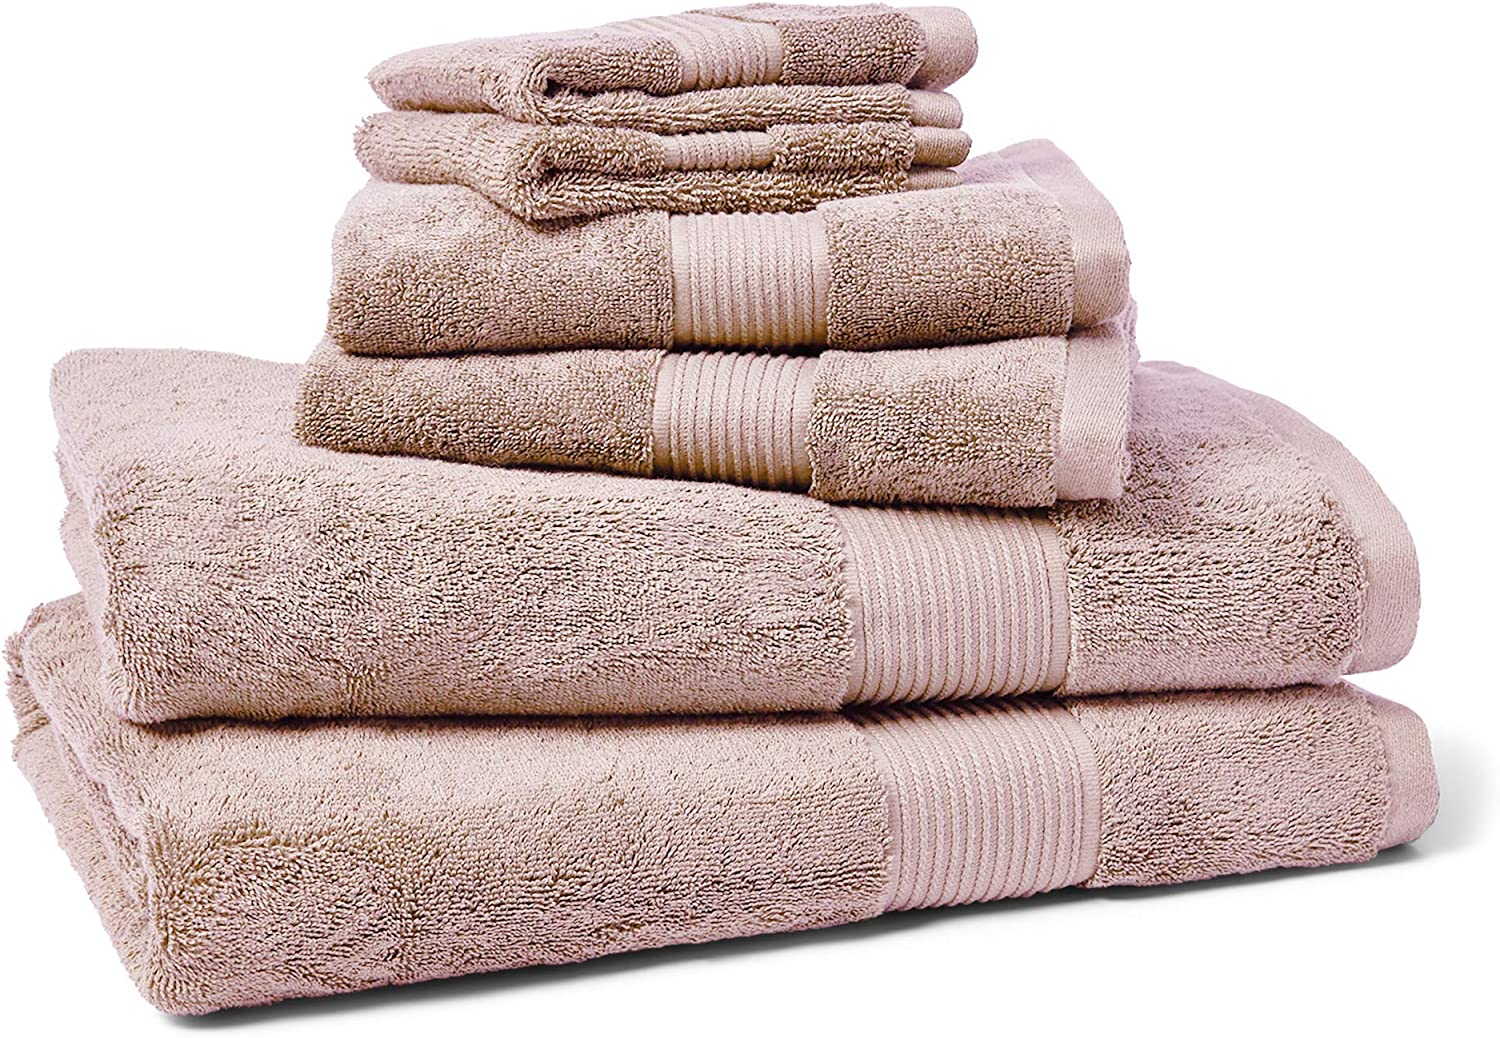 Chaps Home Camden 100% Cotton, 6 Piece Set, Highly Absorbent, Fade Resistant, Includes 30 X 56 Bath 16 X 30 Hand, Two 13 X 13 Washcloth Towels, (2) 30X56 (2) 16X30 (2) 13X13, Dusty Mauve